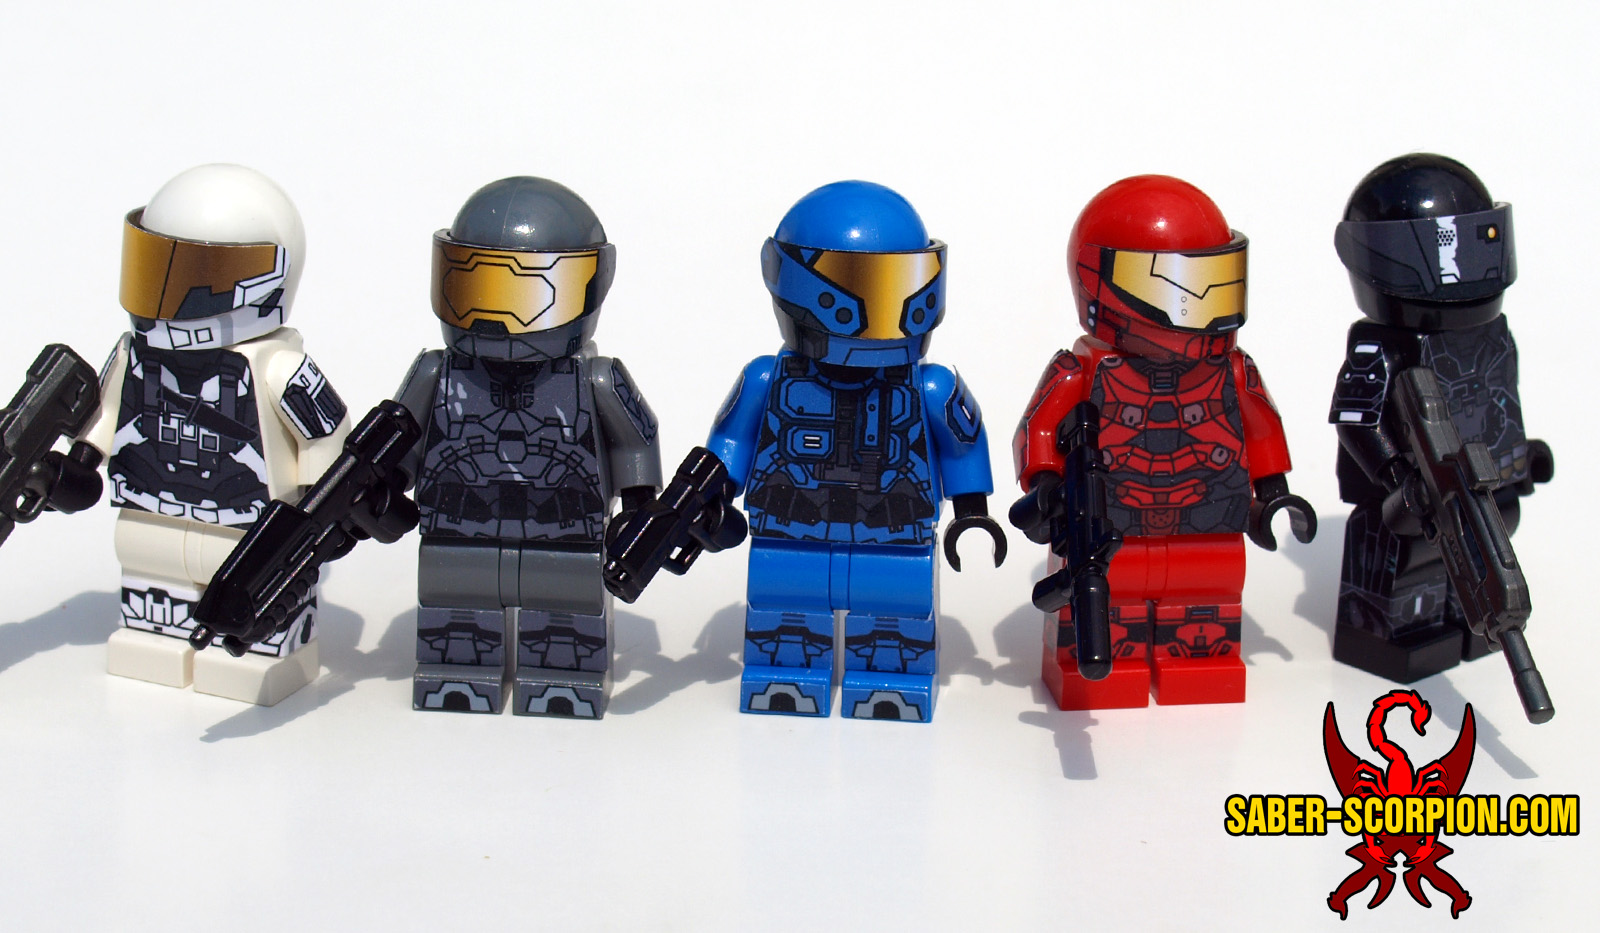 Sci-Fi Cyborg Spartan Soldiers Minifigures